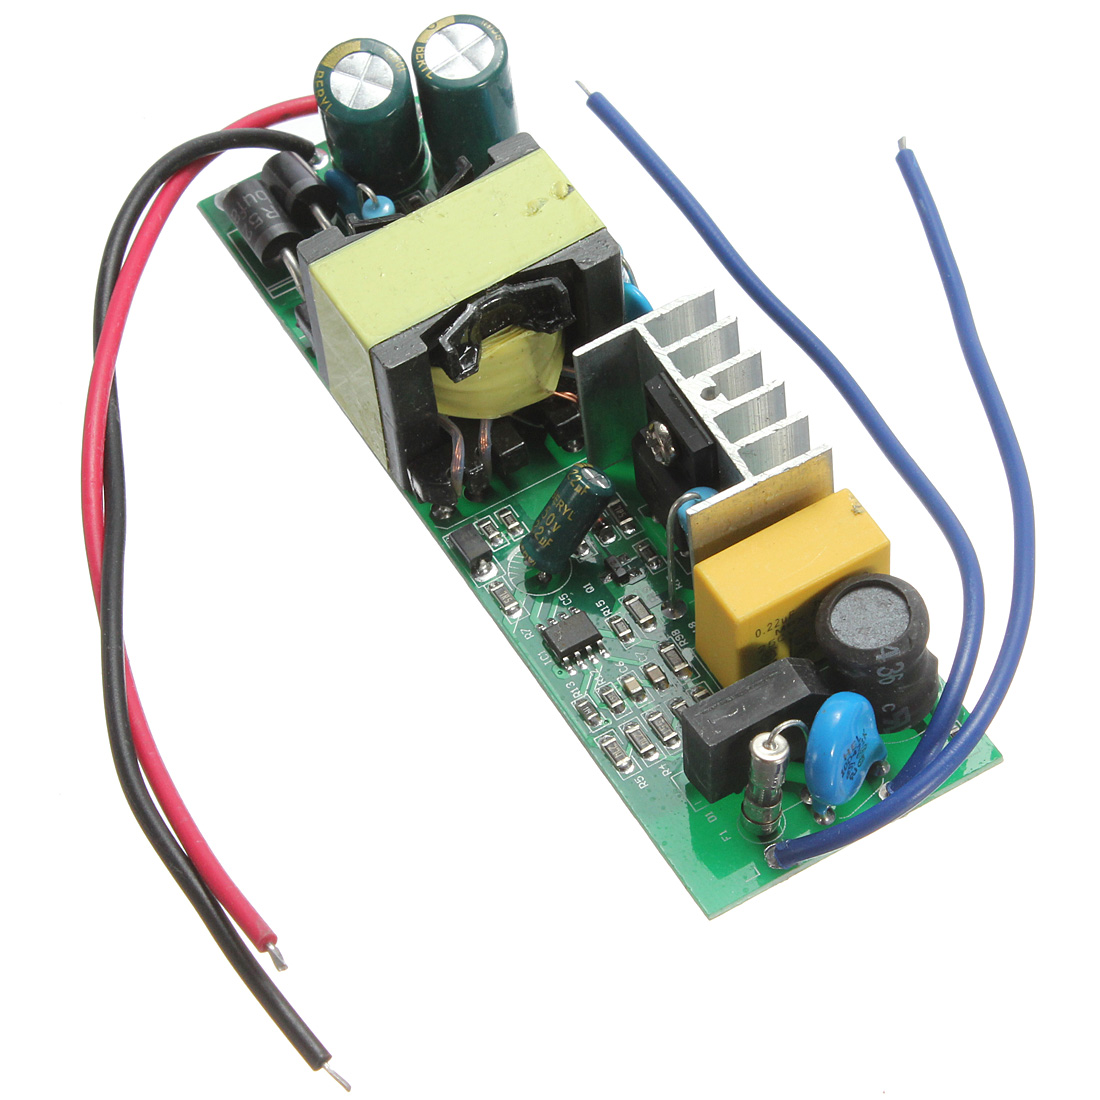 10w 20w 30w 50w led chip driver power supply for light. Black Bedroom Furniture Sets. Home Design Ideas